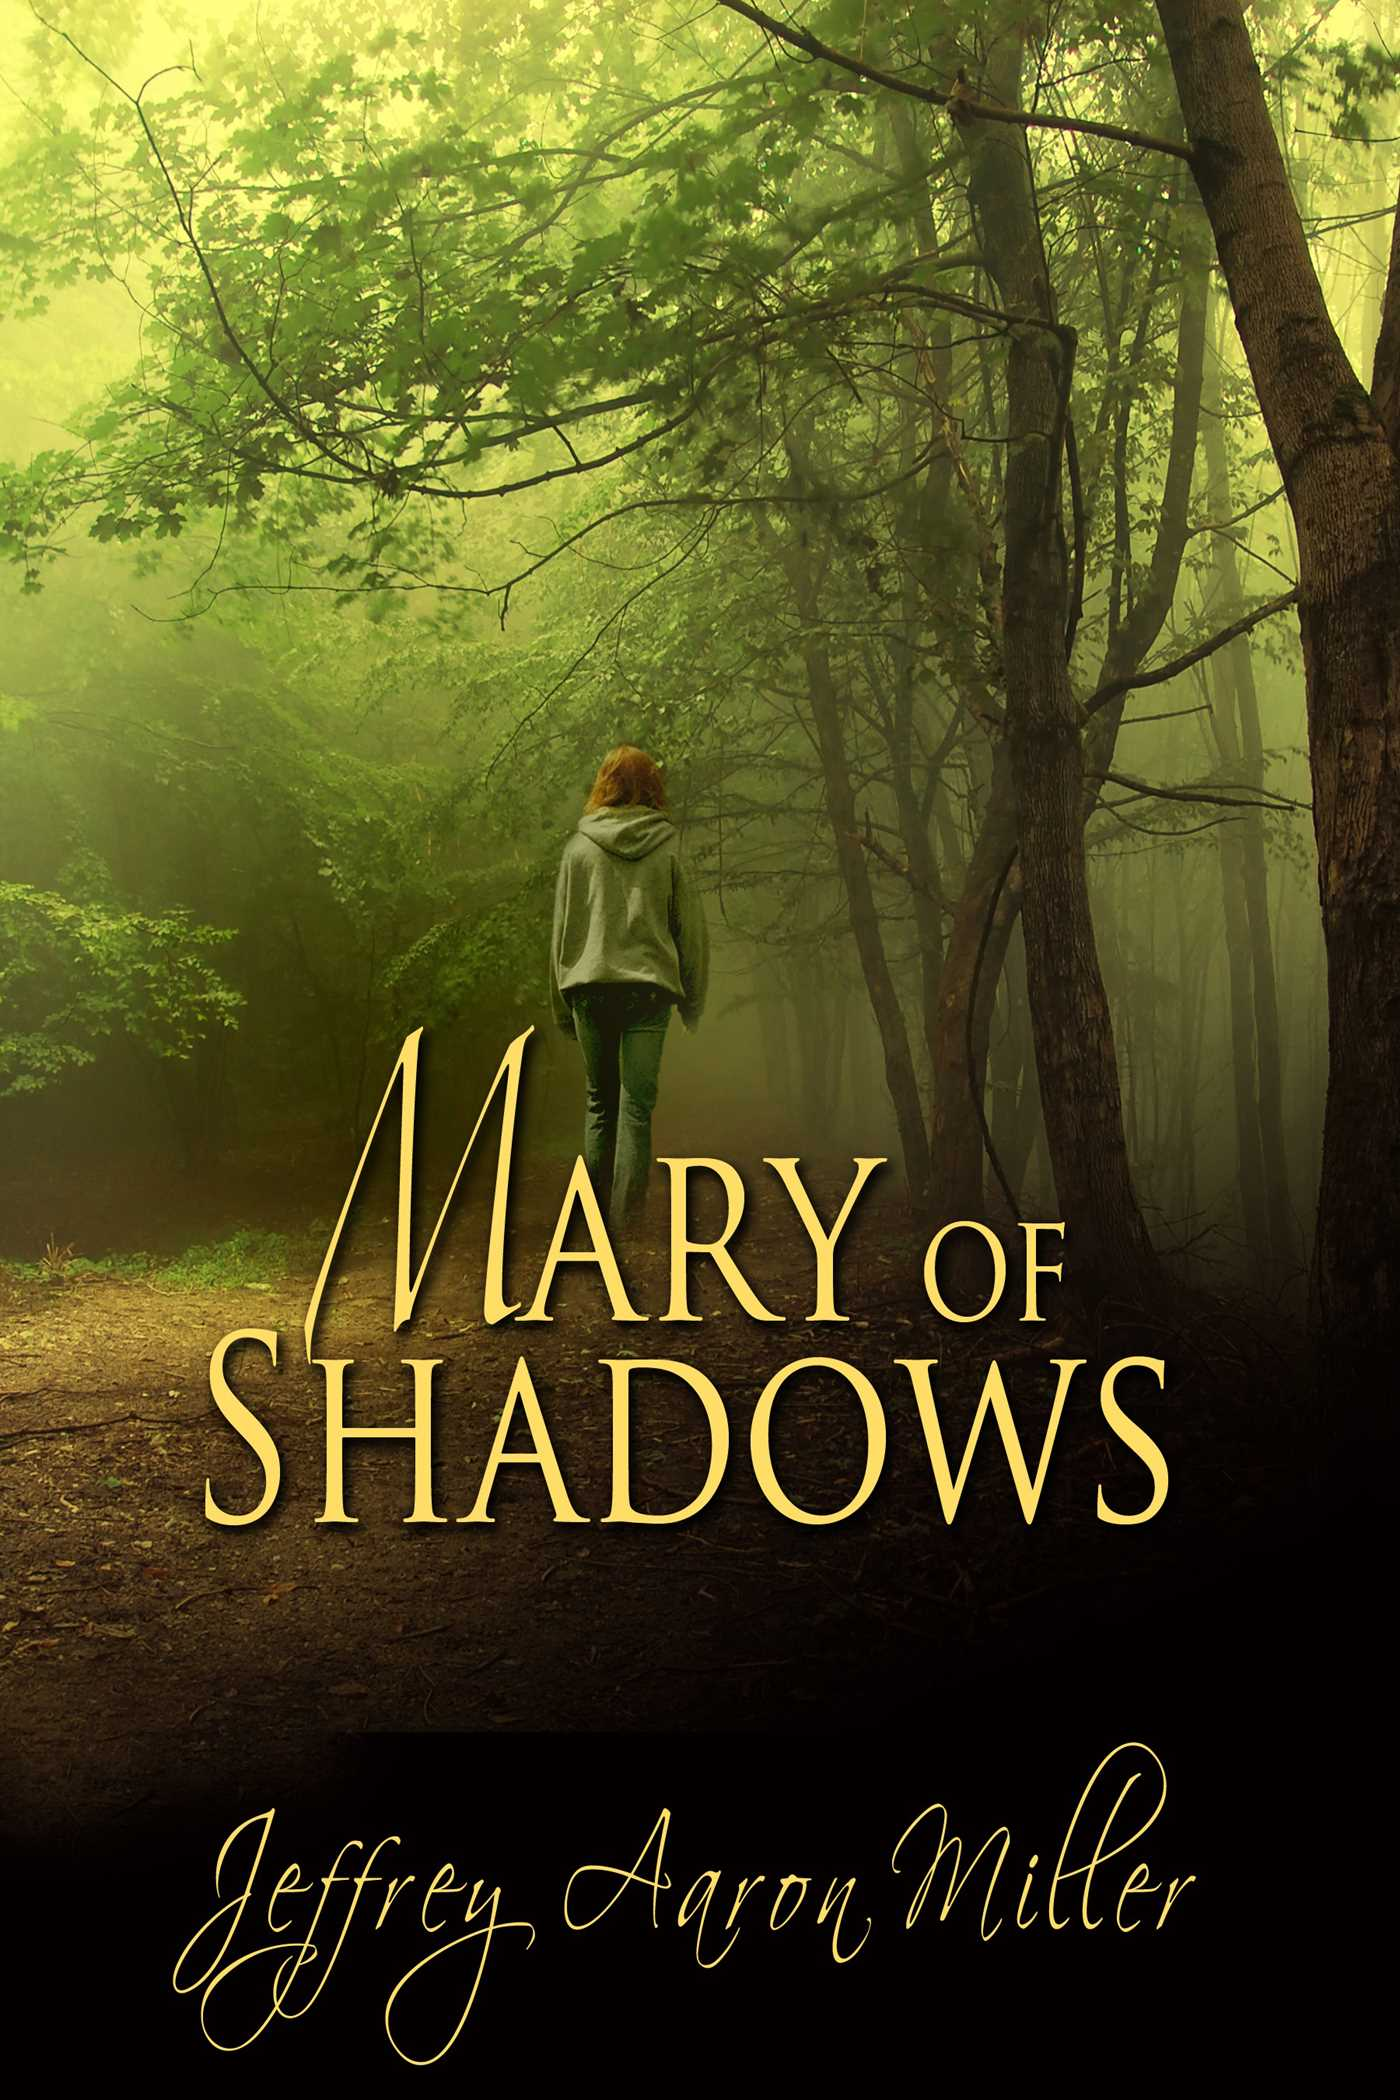 Mary of shadows 9781611606171 hr